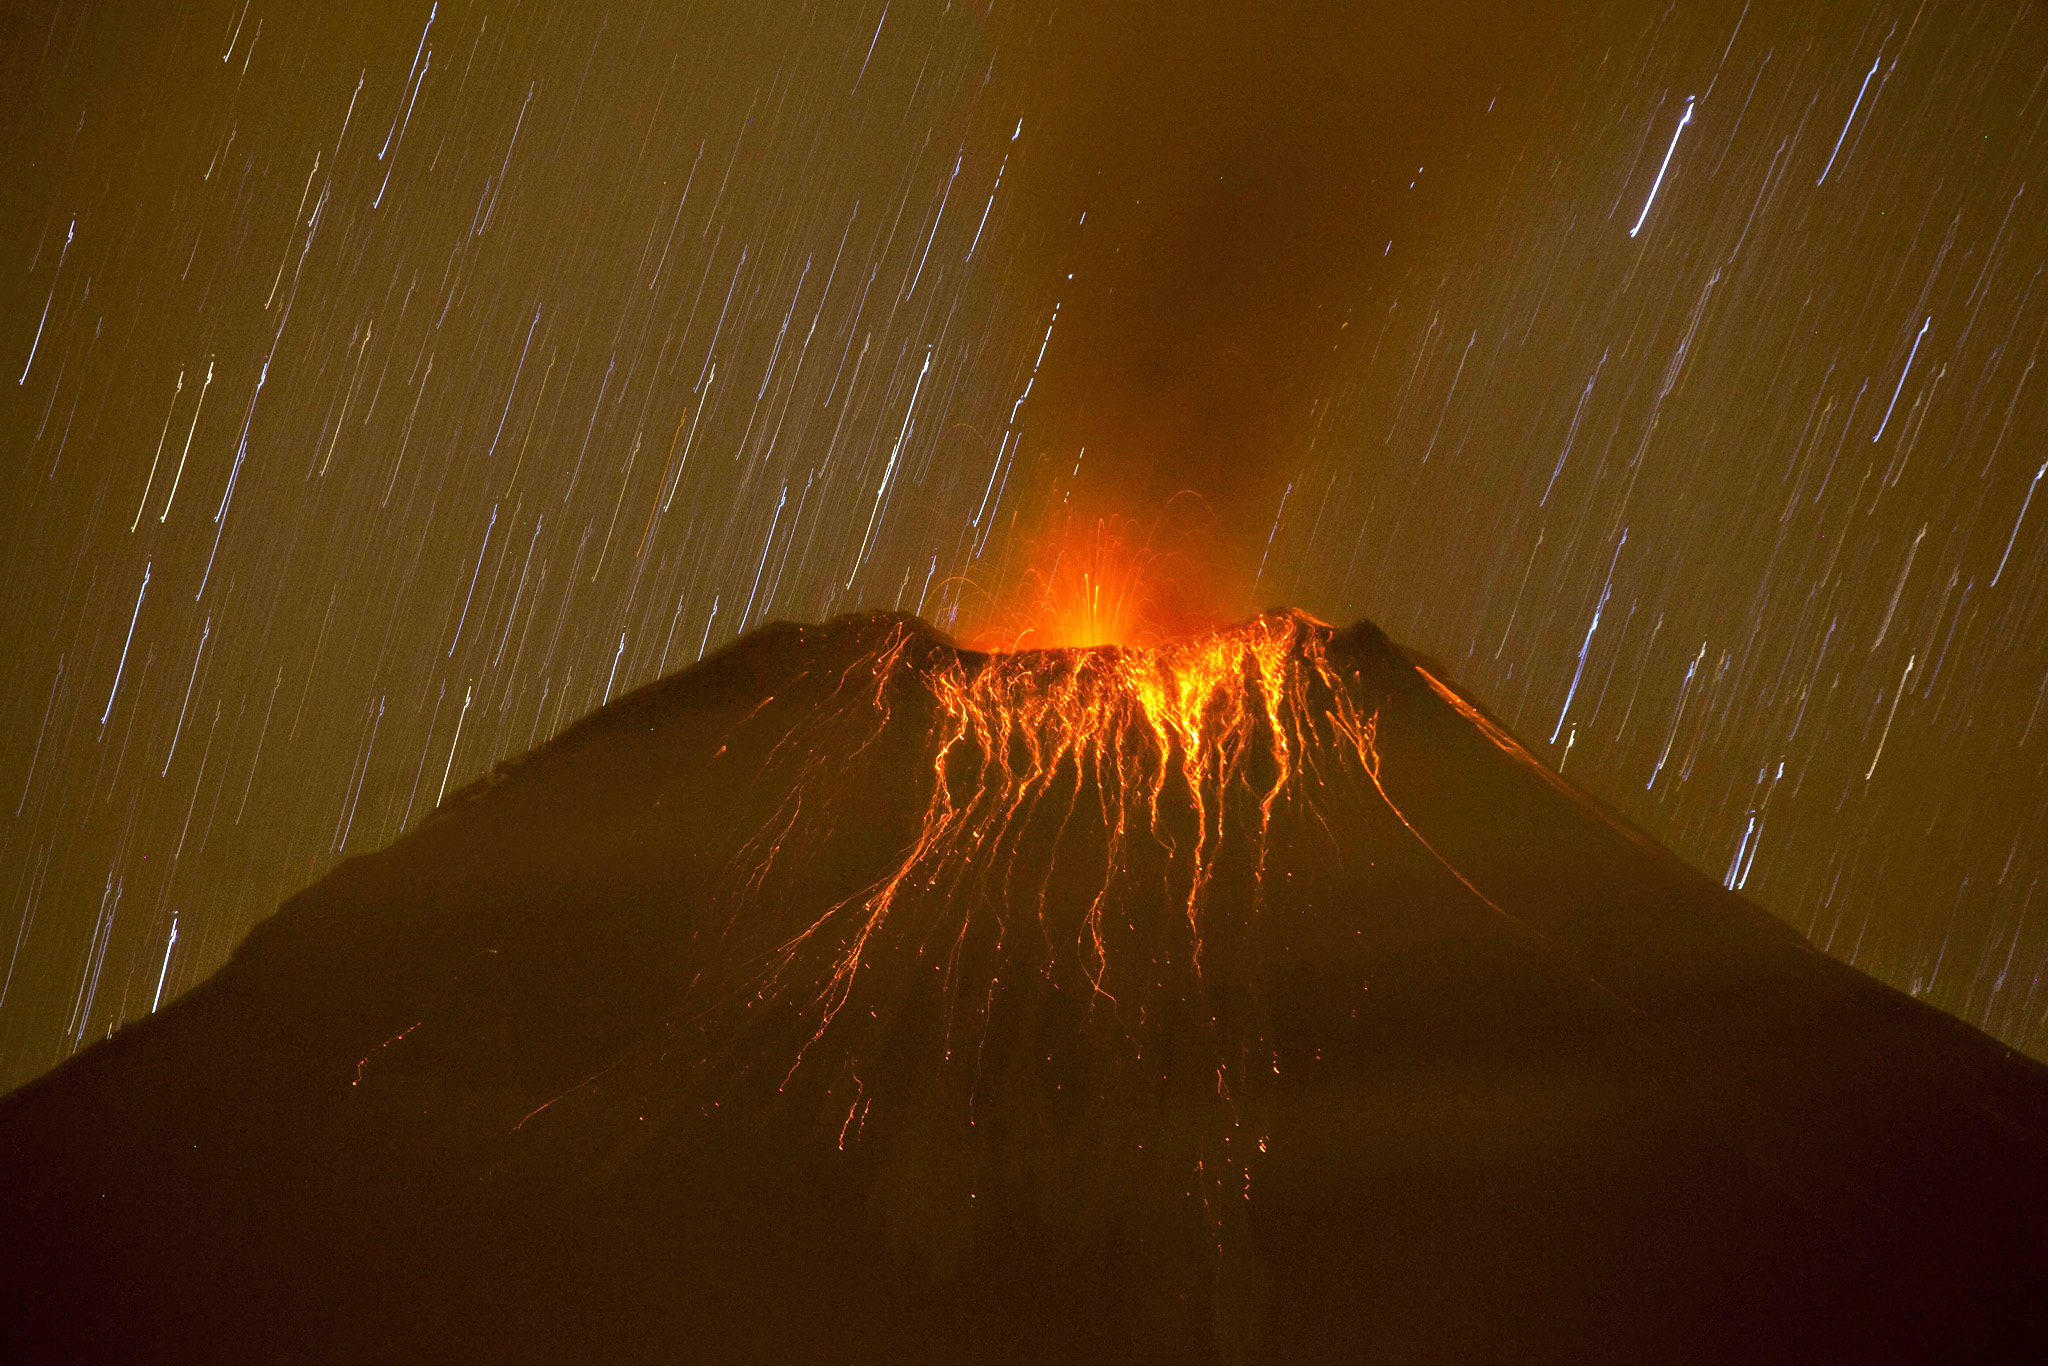 Volcanic activity at the Tungurahua volcano in Cotalo, Ecuador, 19 November 2015. An increase in volcanic activtiy has been reported at the Tungurahua volcano, according to the latest finidngs from the Ecuadorian Geophysical Institute of the National Polytechnic School (IG-EPN).